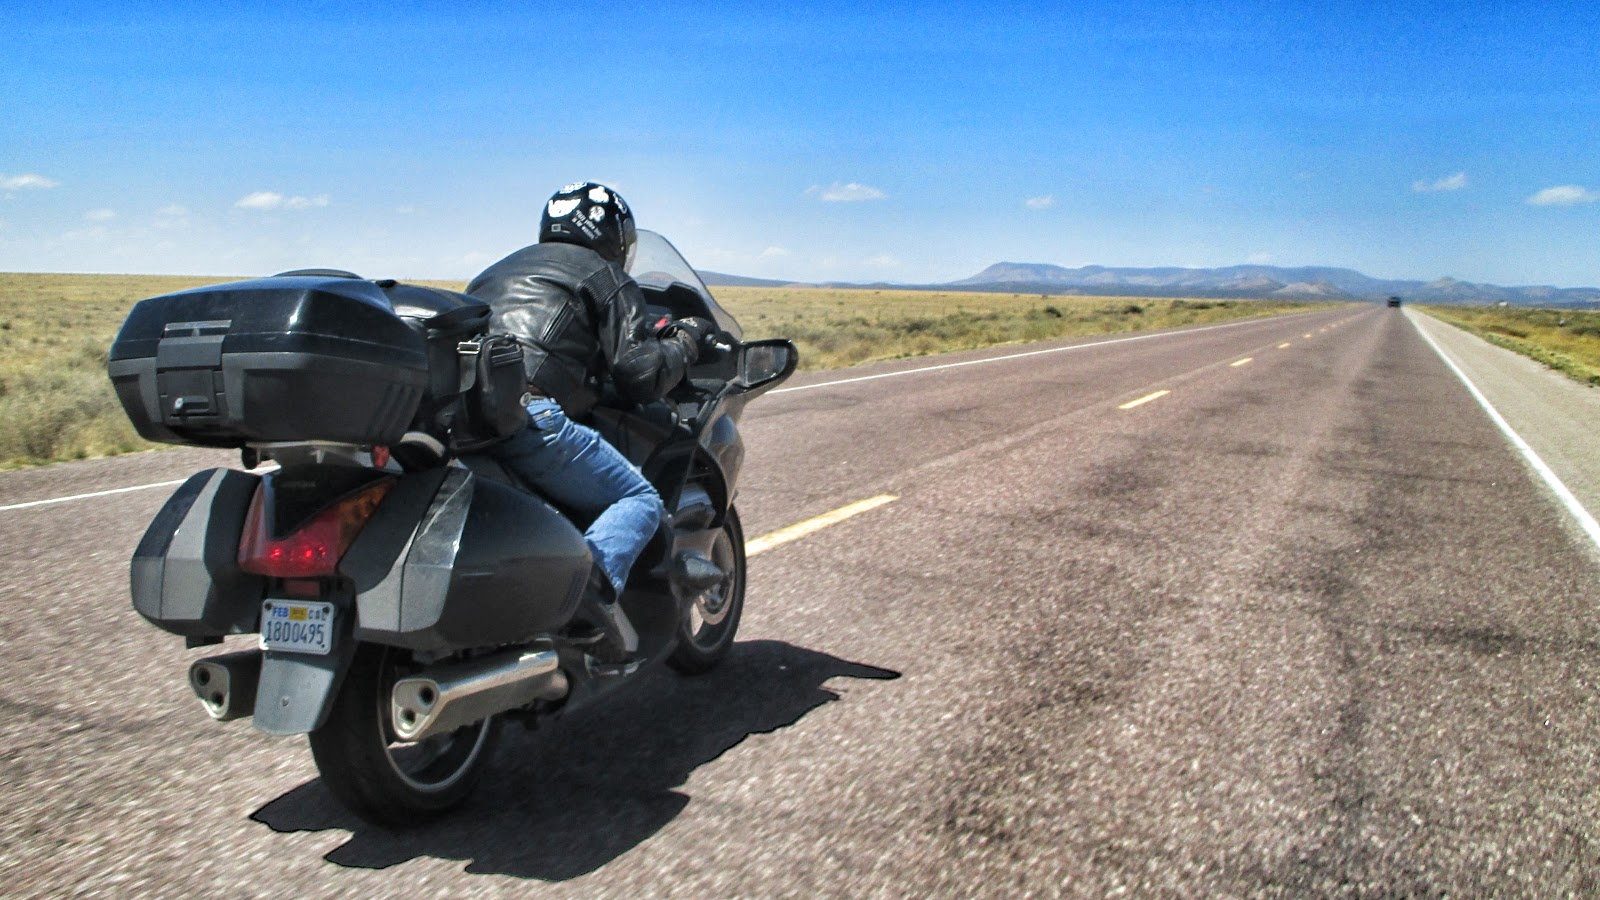 us-60 new mexico motorcycle